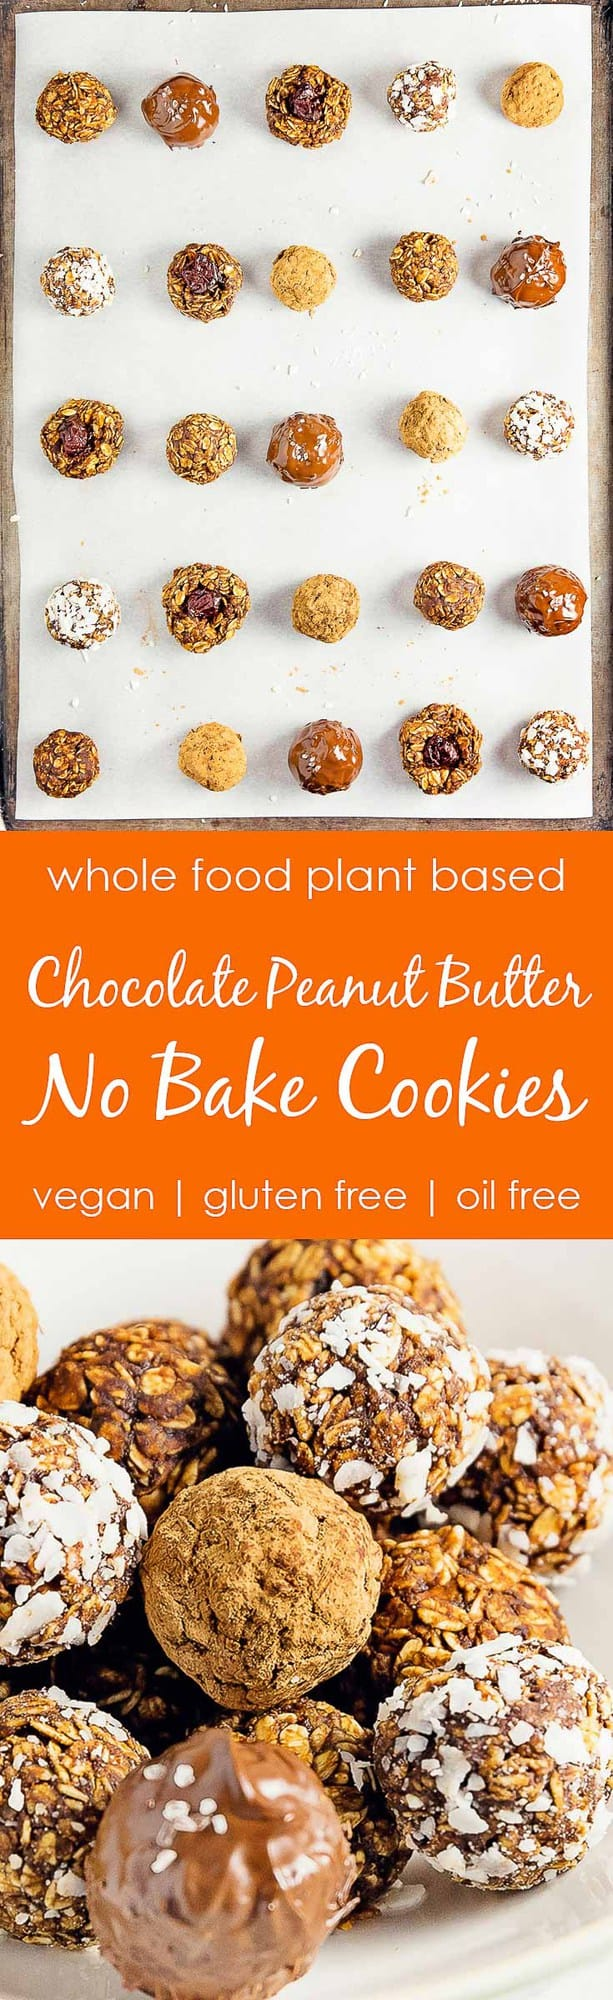 Chocolate Peanut Butter No Bake Cookies, plant based, vegan, vegetarian, whole food plant based, gluten free, recipe, wfpb, healthy, healthy vegan, oil free, no refined sugar, no oil, refined sugar free, dairy free, dinner party, entertaining, dessert, chocolate, peanut butter, no bake cookies